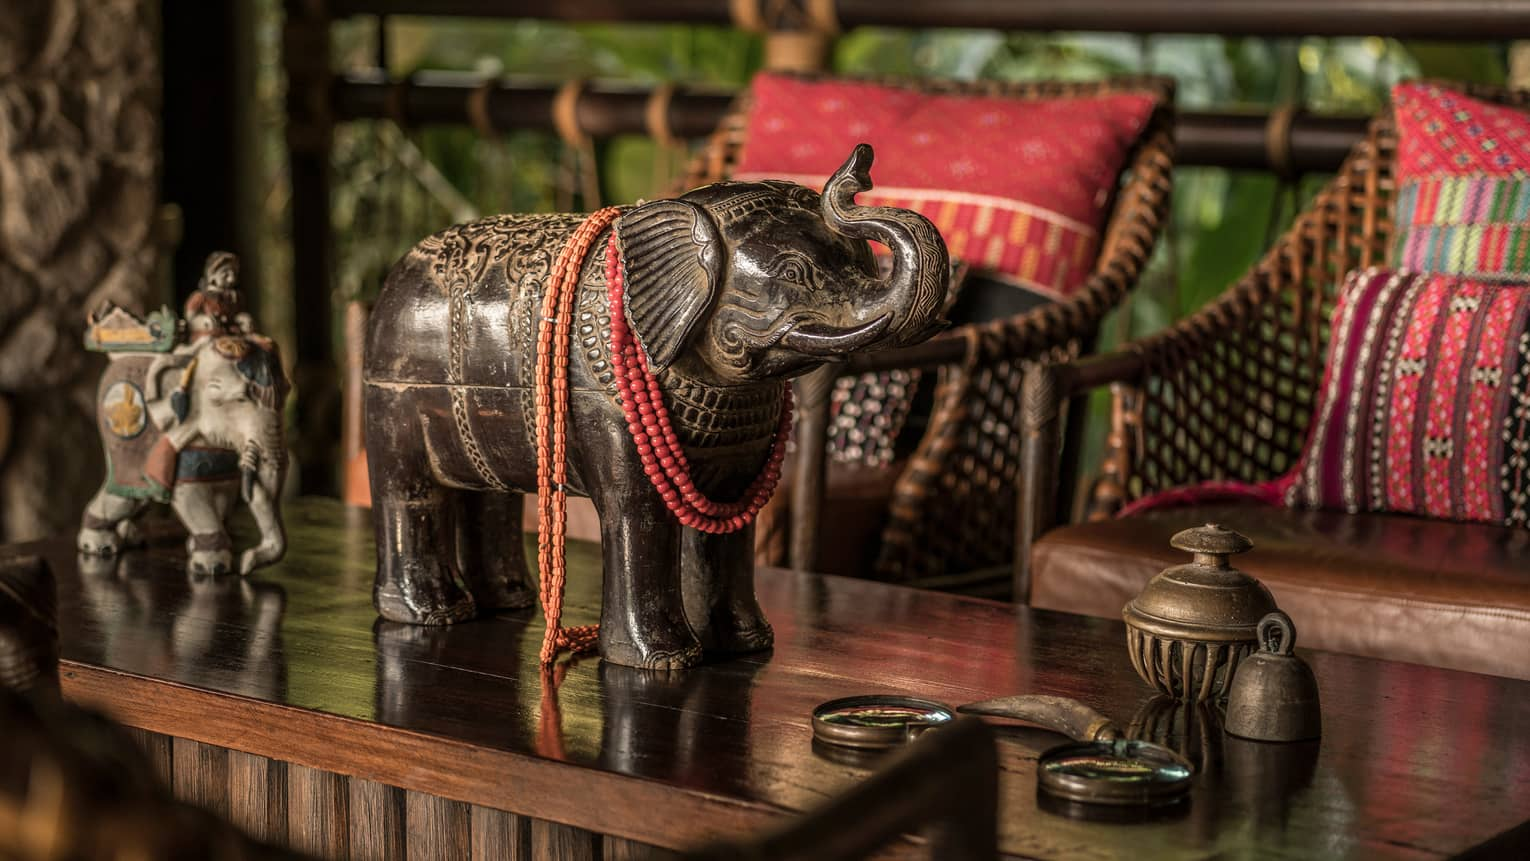 Elephant statue on wood table in front of bamboo sofa with red cushions